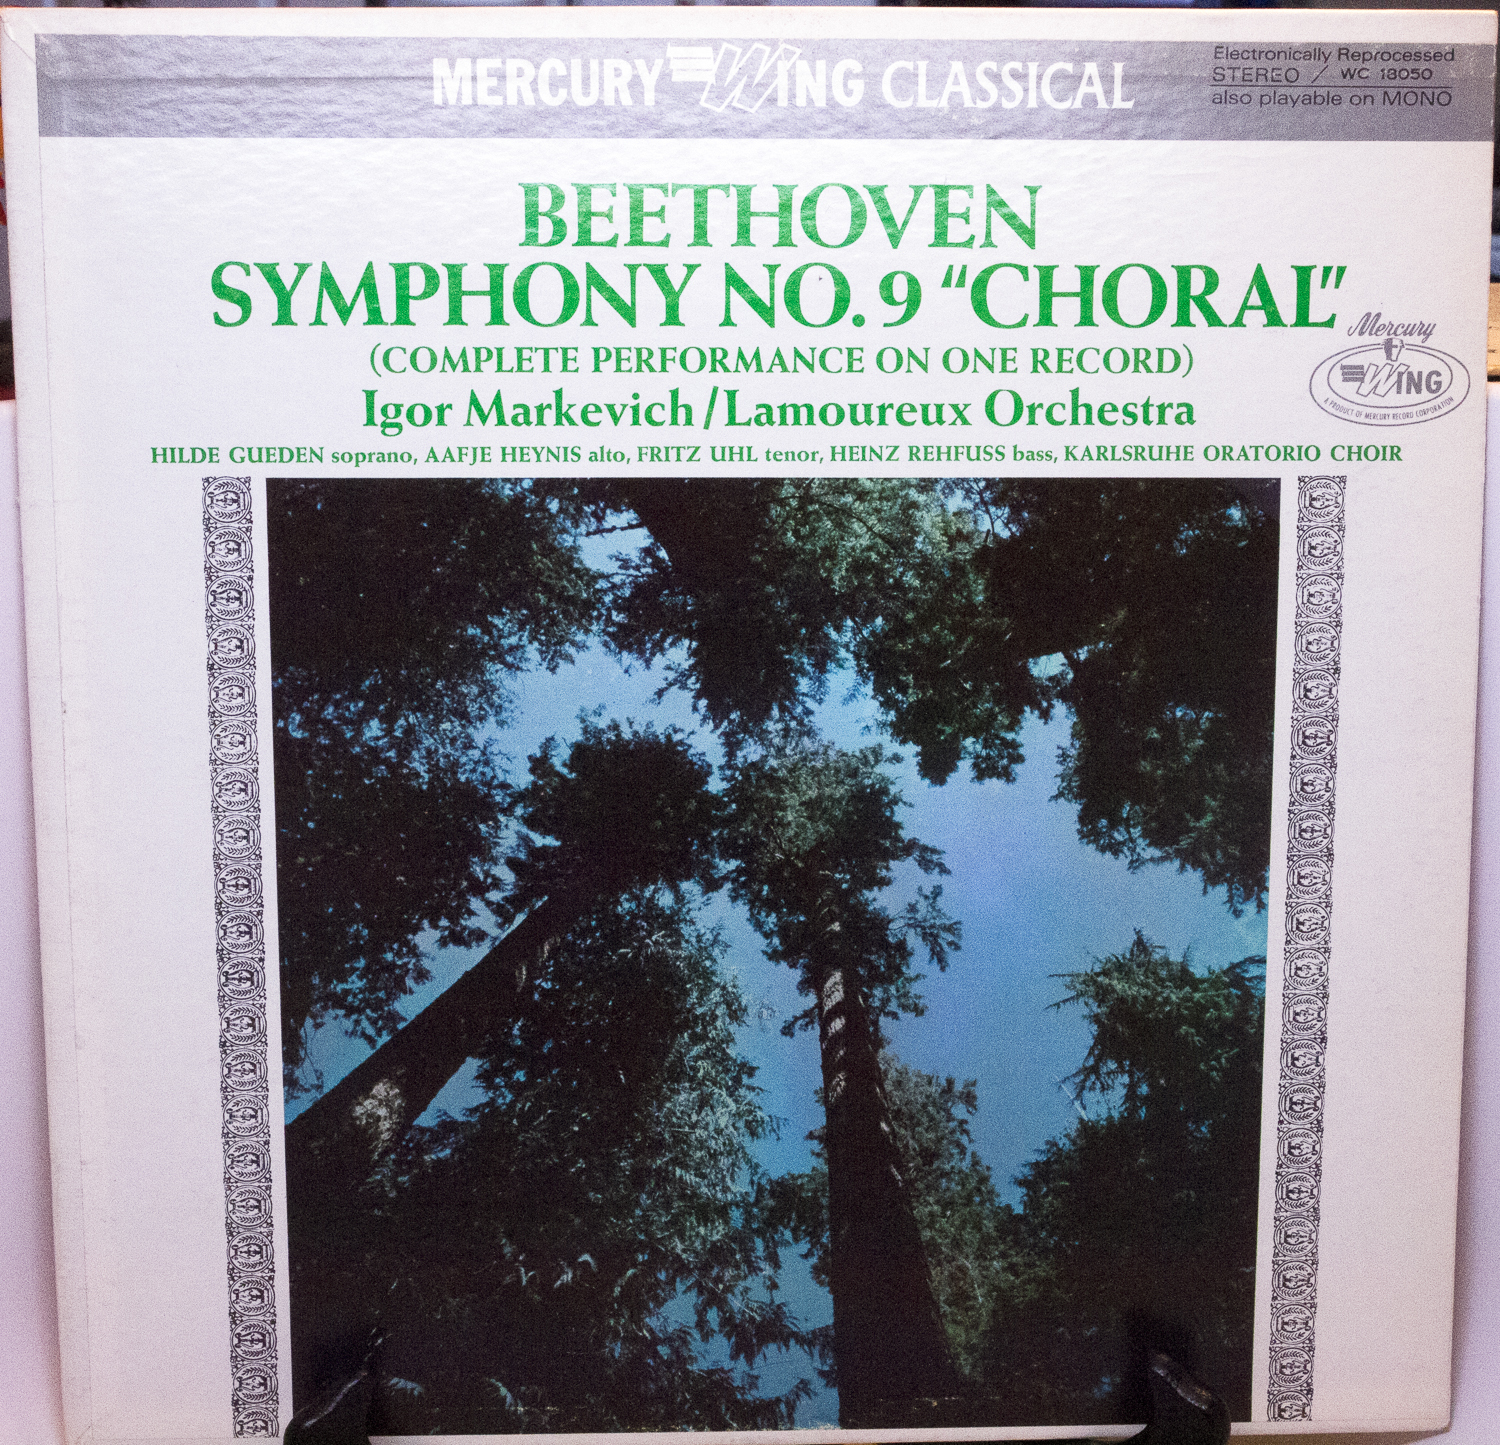 an analysis of beethovens symphony no 9 choral The berliner philharmoniker with swedish radio choir and eric ericson chamber choir performs ludwig van beethoven's symphony no 9 (claudio abbado.